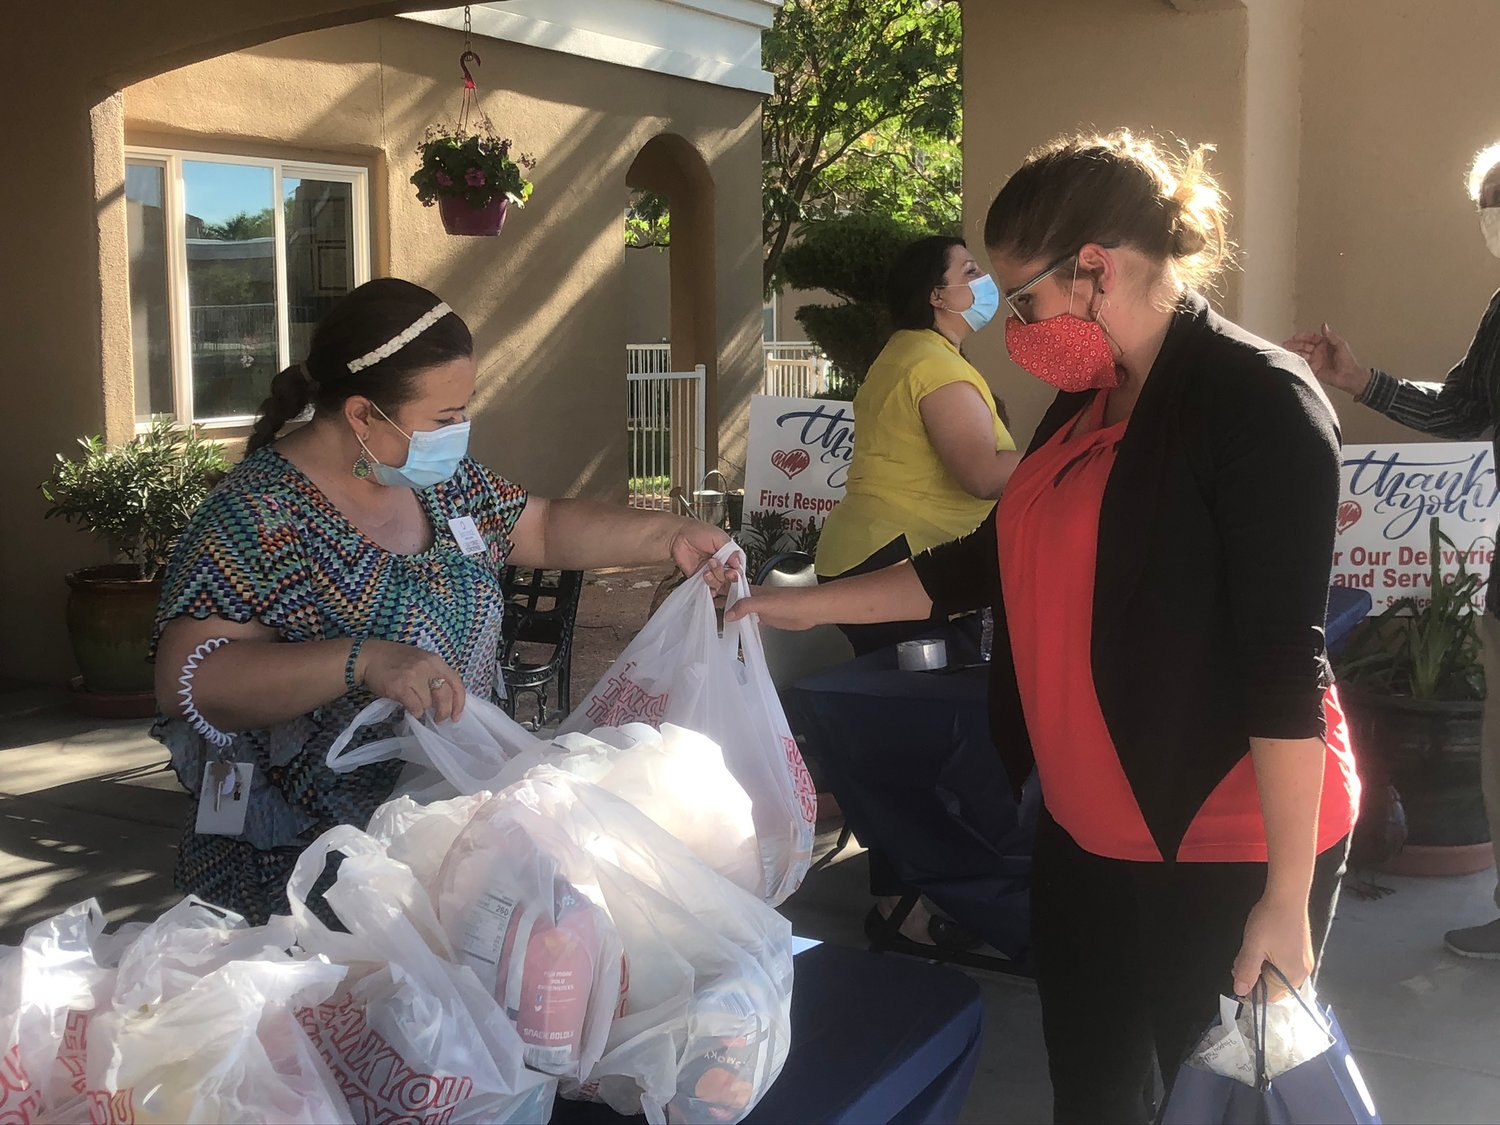 Emily Gomez, right, picks up a Father's Day picnic pack from Solstice Senior Living from concierge, Lily Cruz. At the next table, Renee Segura, director of sales and marketing for the facility hands out the beer to accompany the brats.